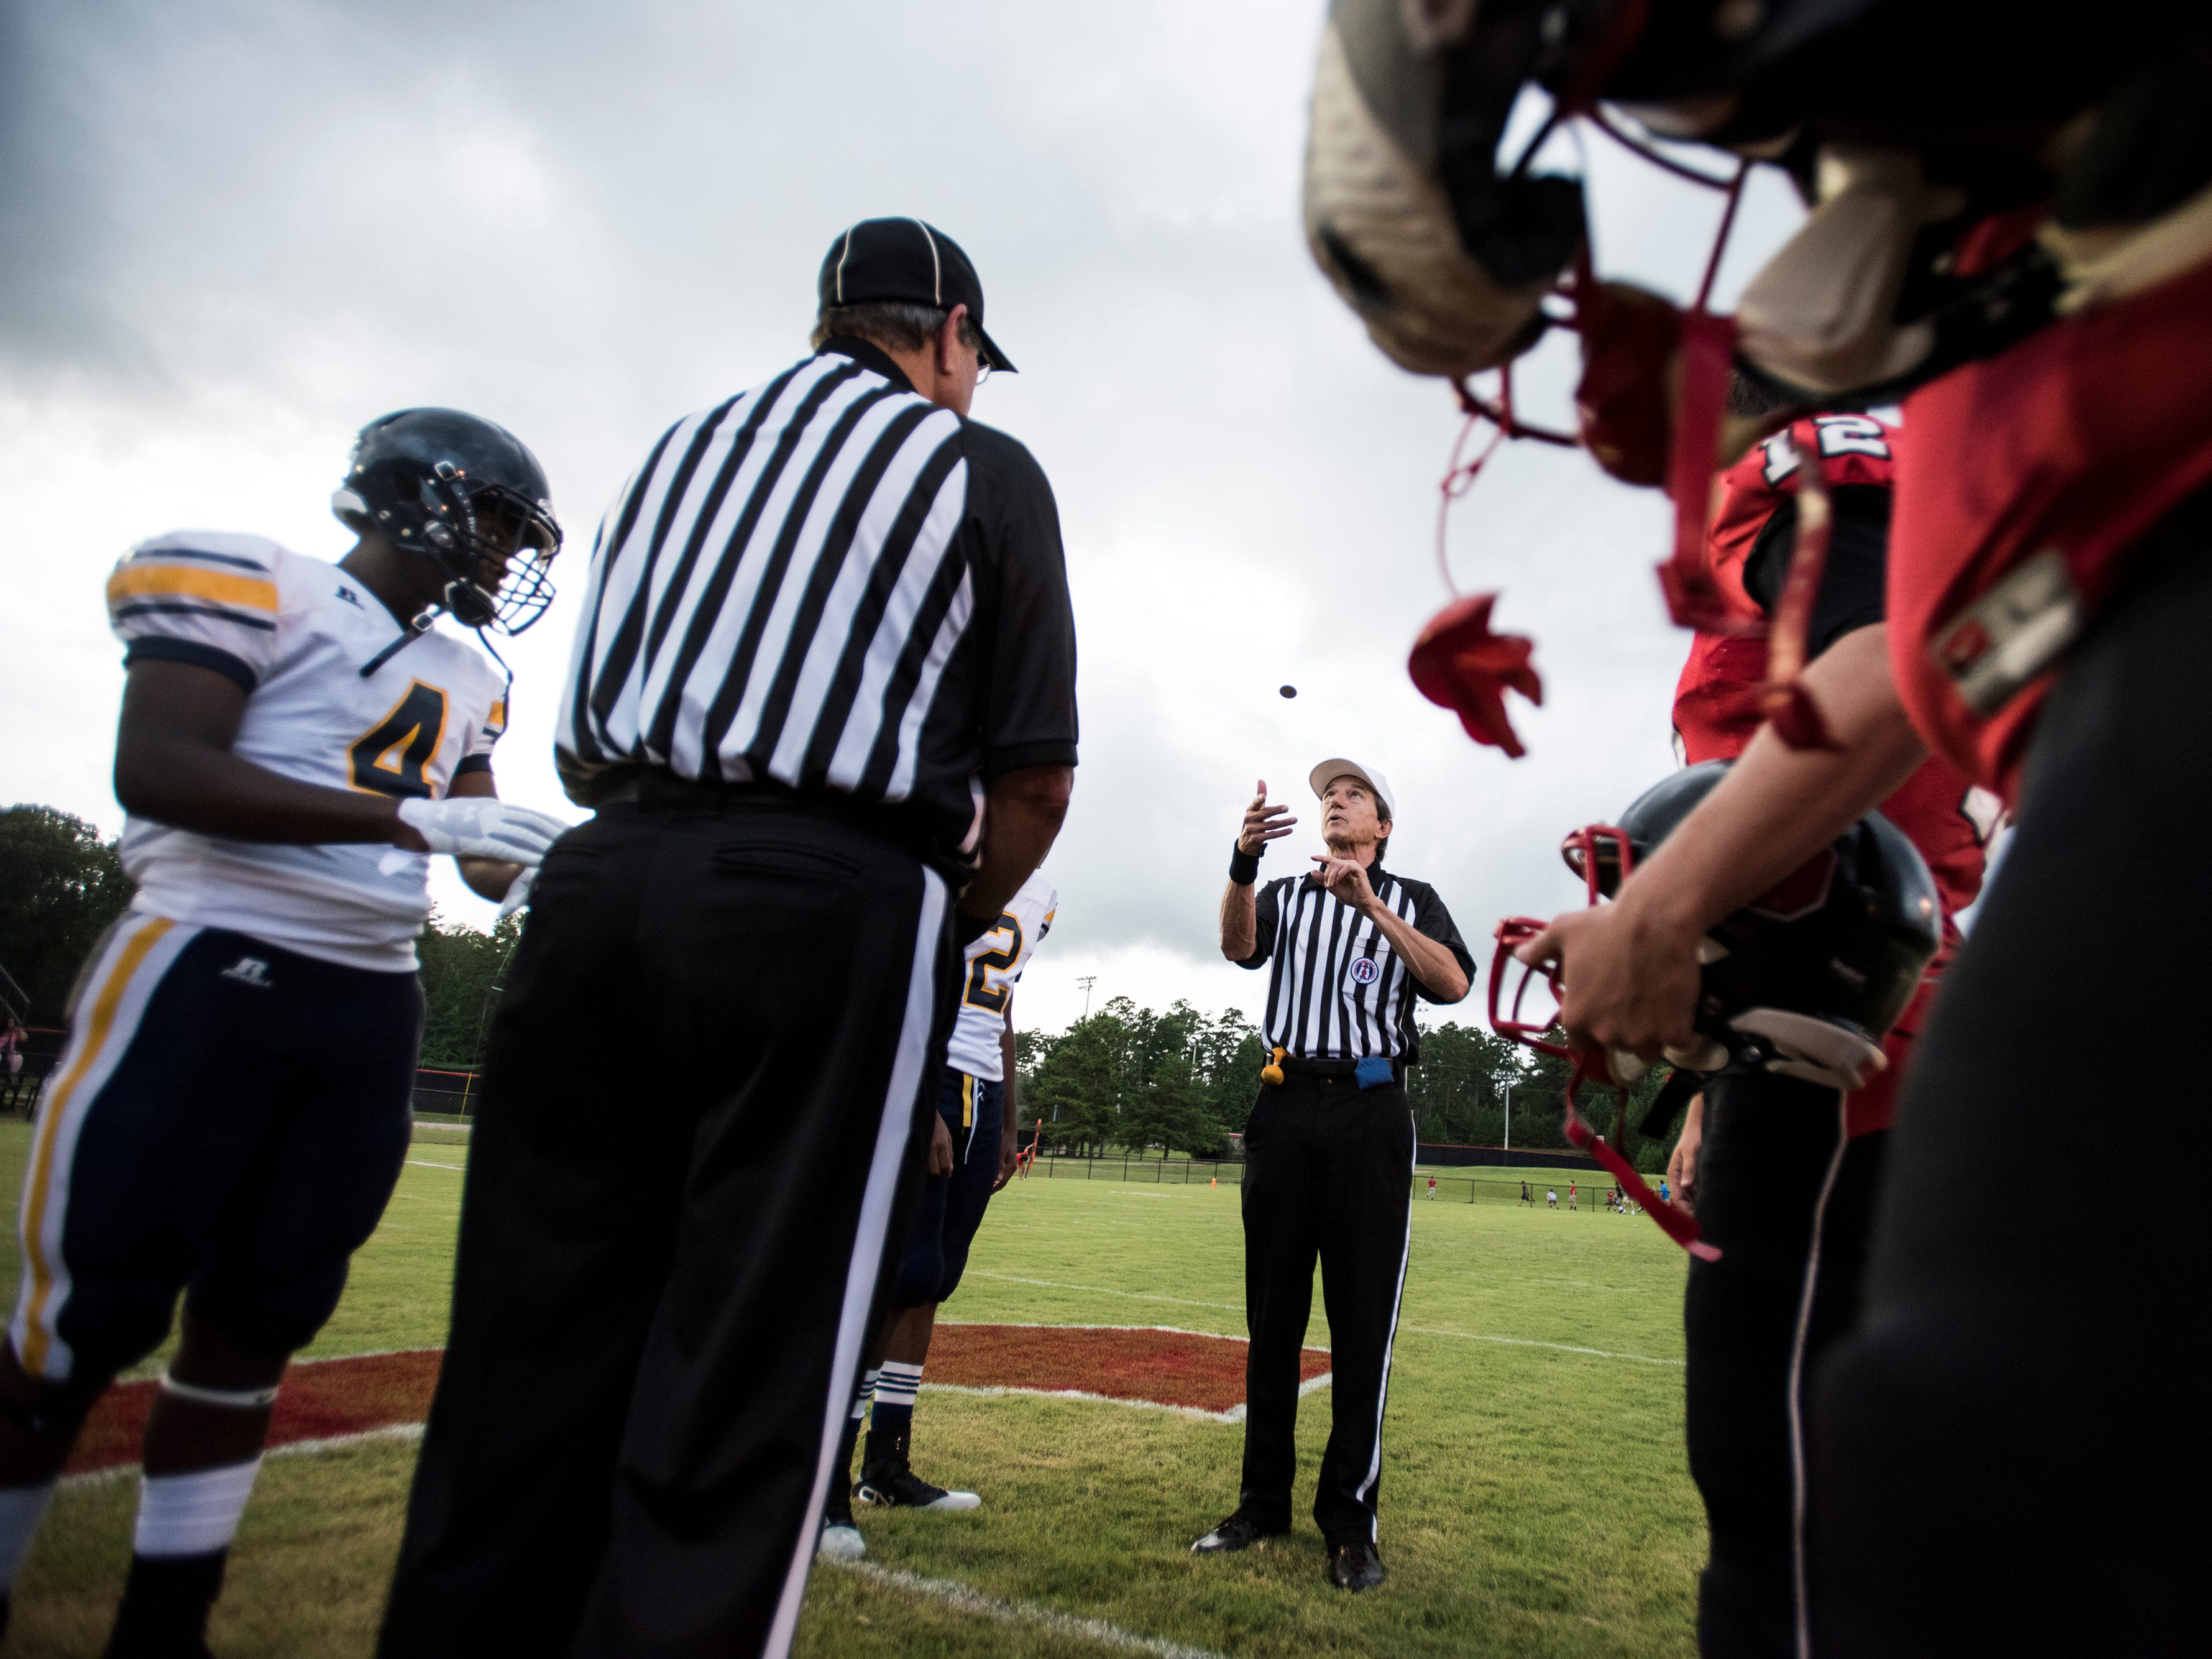 Team captains join the officials at midfield for the coin toss as Success Unlimited Academy takes on Springwood in the schools first every football game at Springwood High School in Lanett, Ala., on Friday, Aug. 17, 2018. Springwood defeated Success Unlimited Academy 23-12.